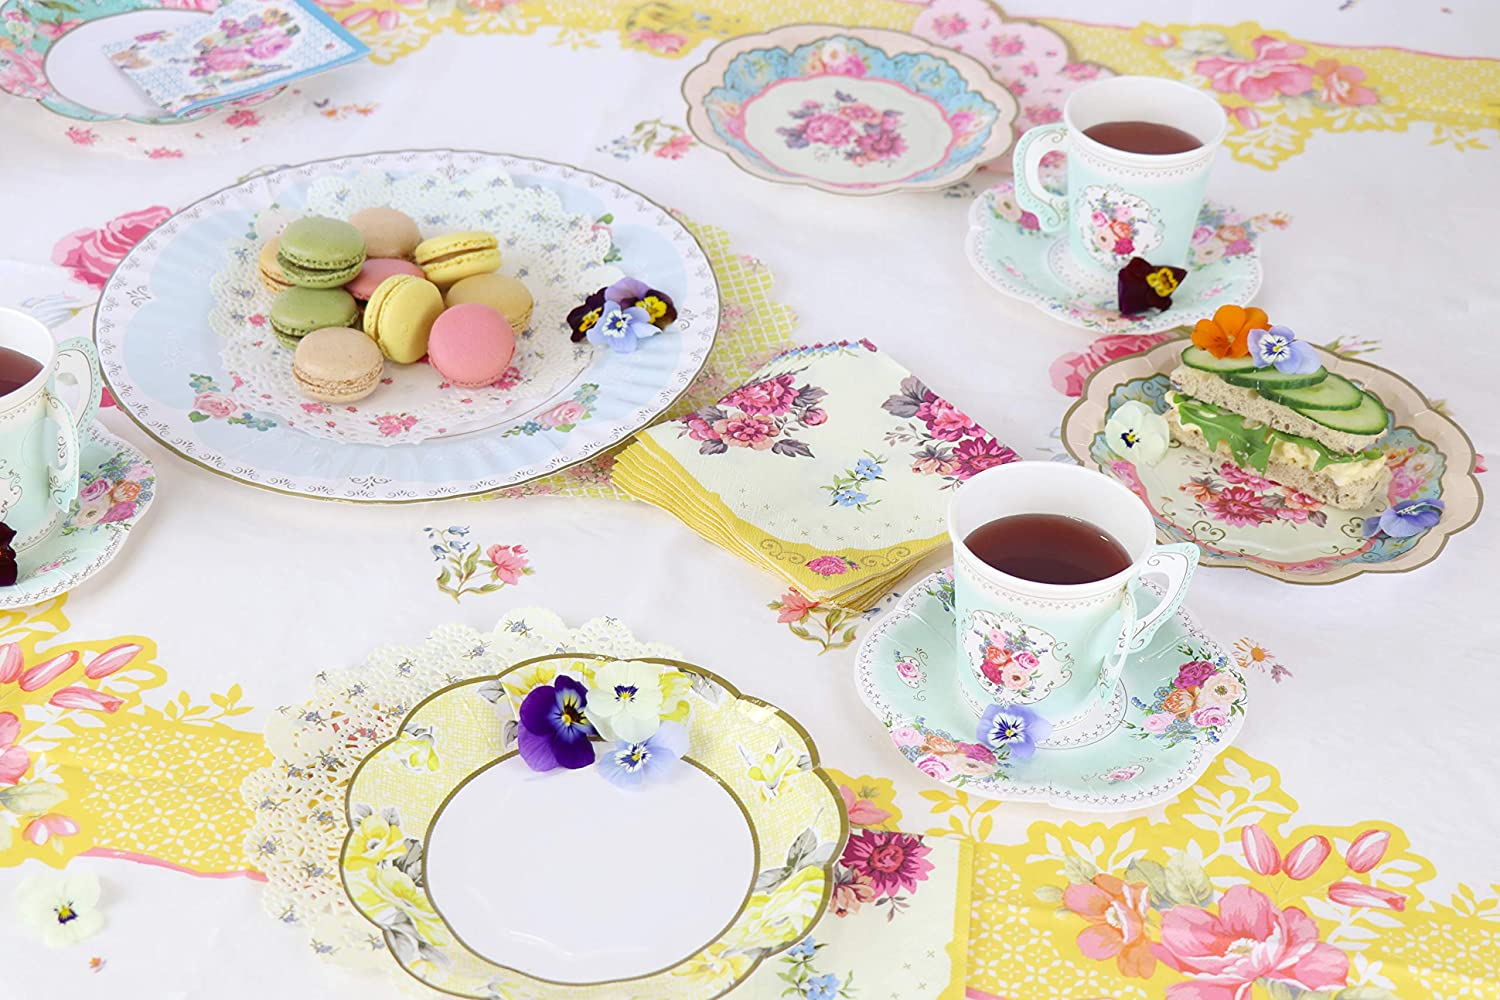 14.6 x 14.2 x 16.2 cm Talking Tables Truly Scrumptious Paper Cup with Handle and Saucers Set Cardboard Multi-Colour